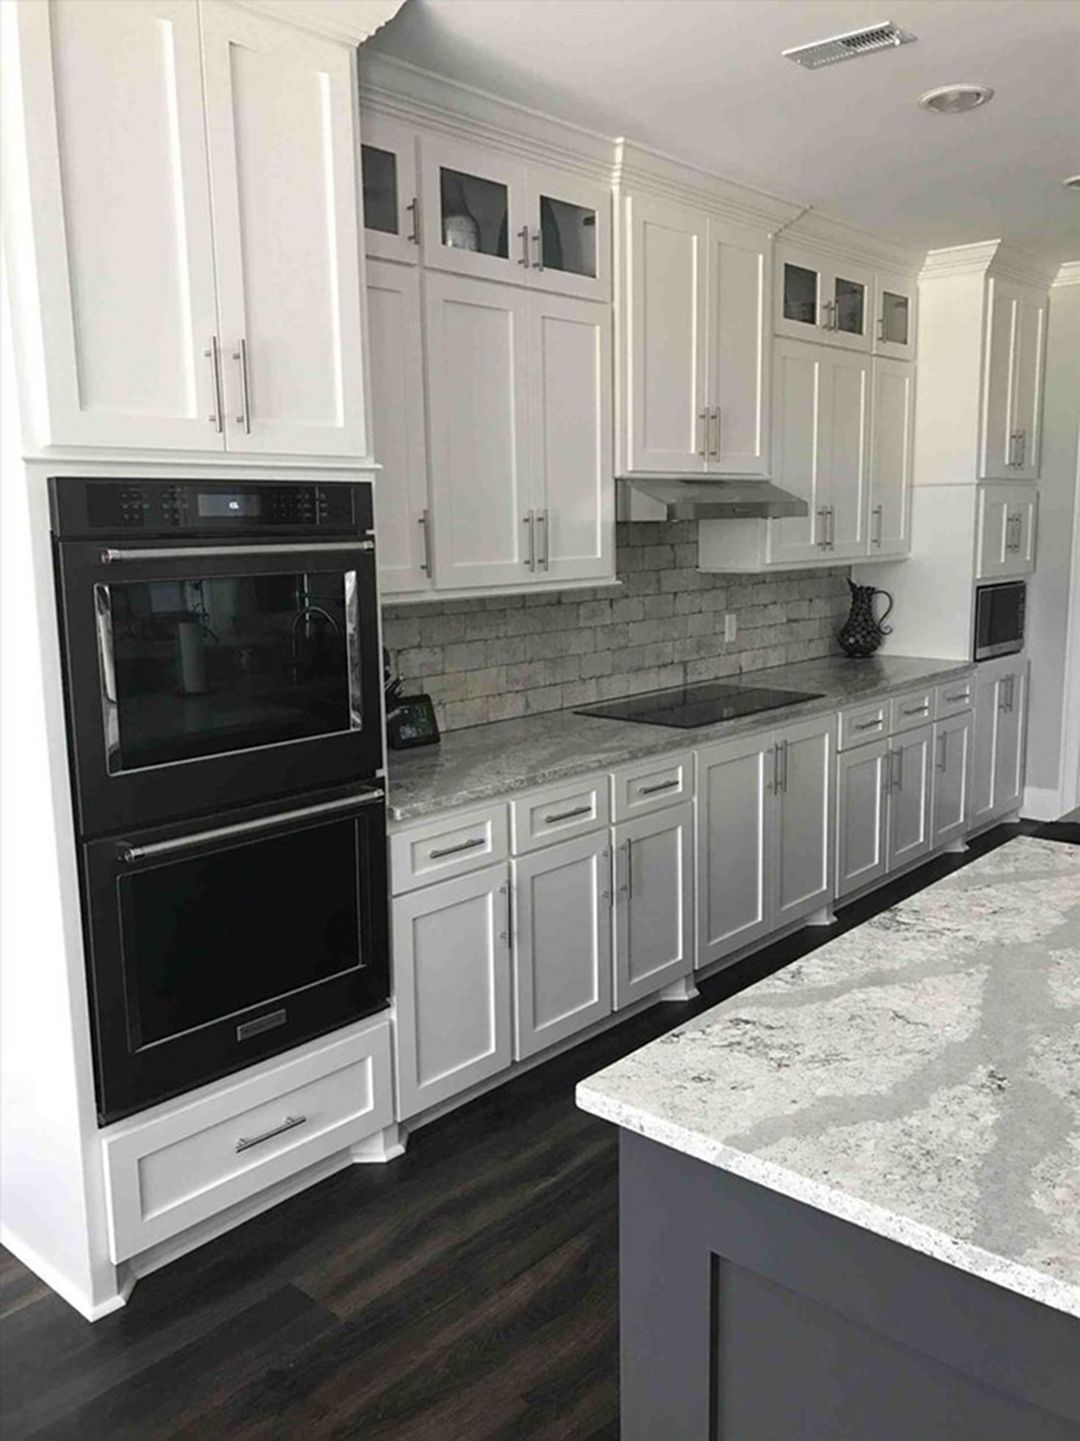 Oak Cabinets Black Appliances Black Sink Not Sure I Love The